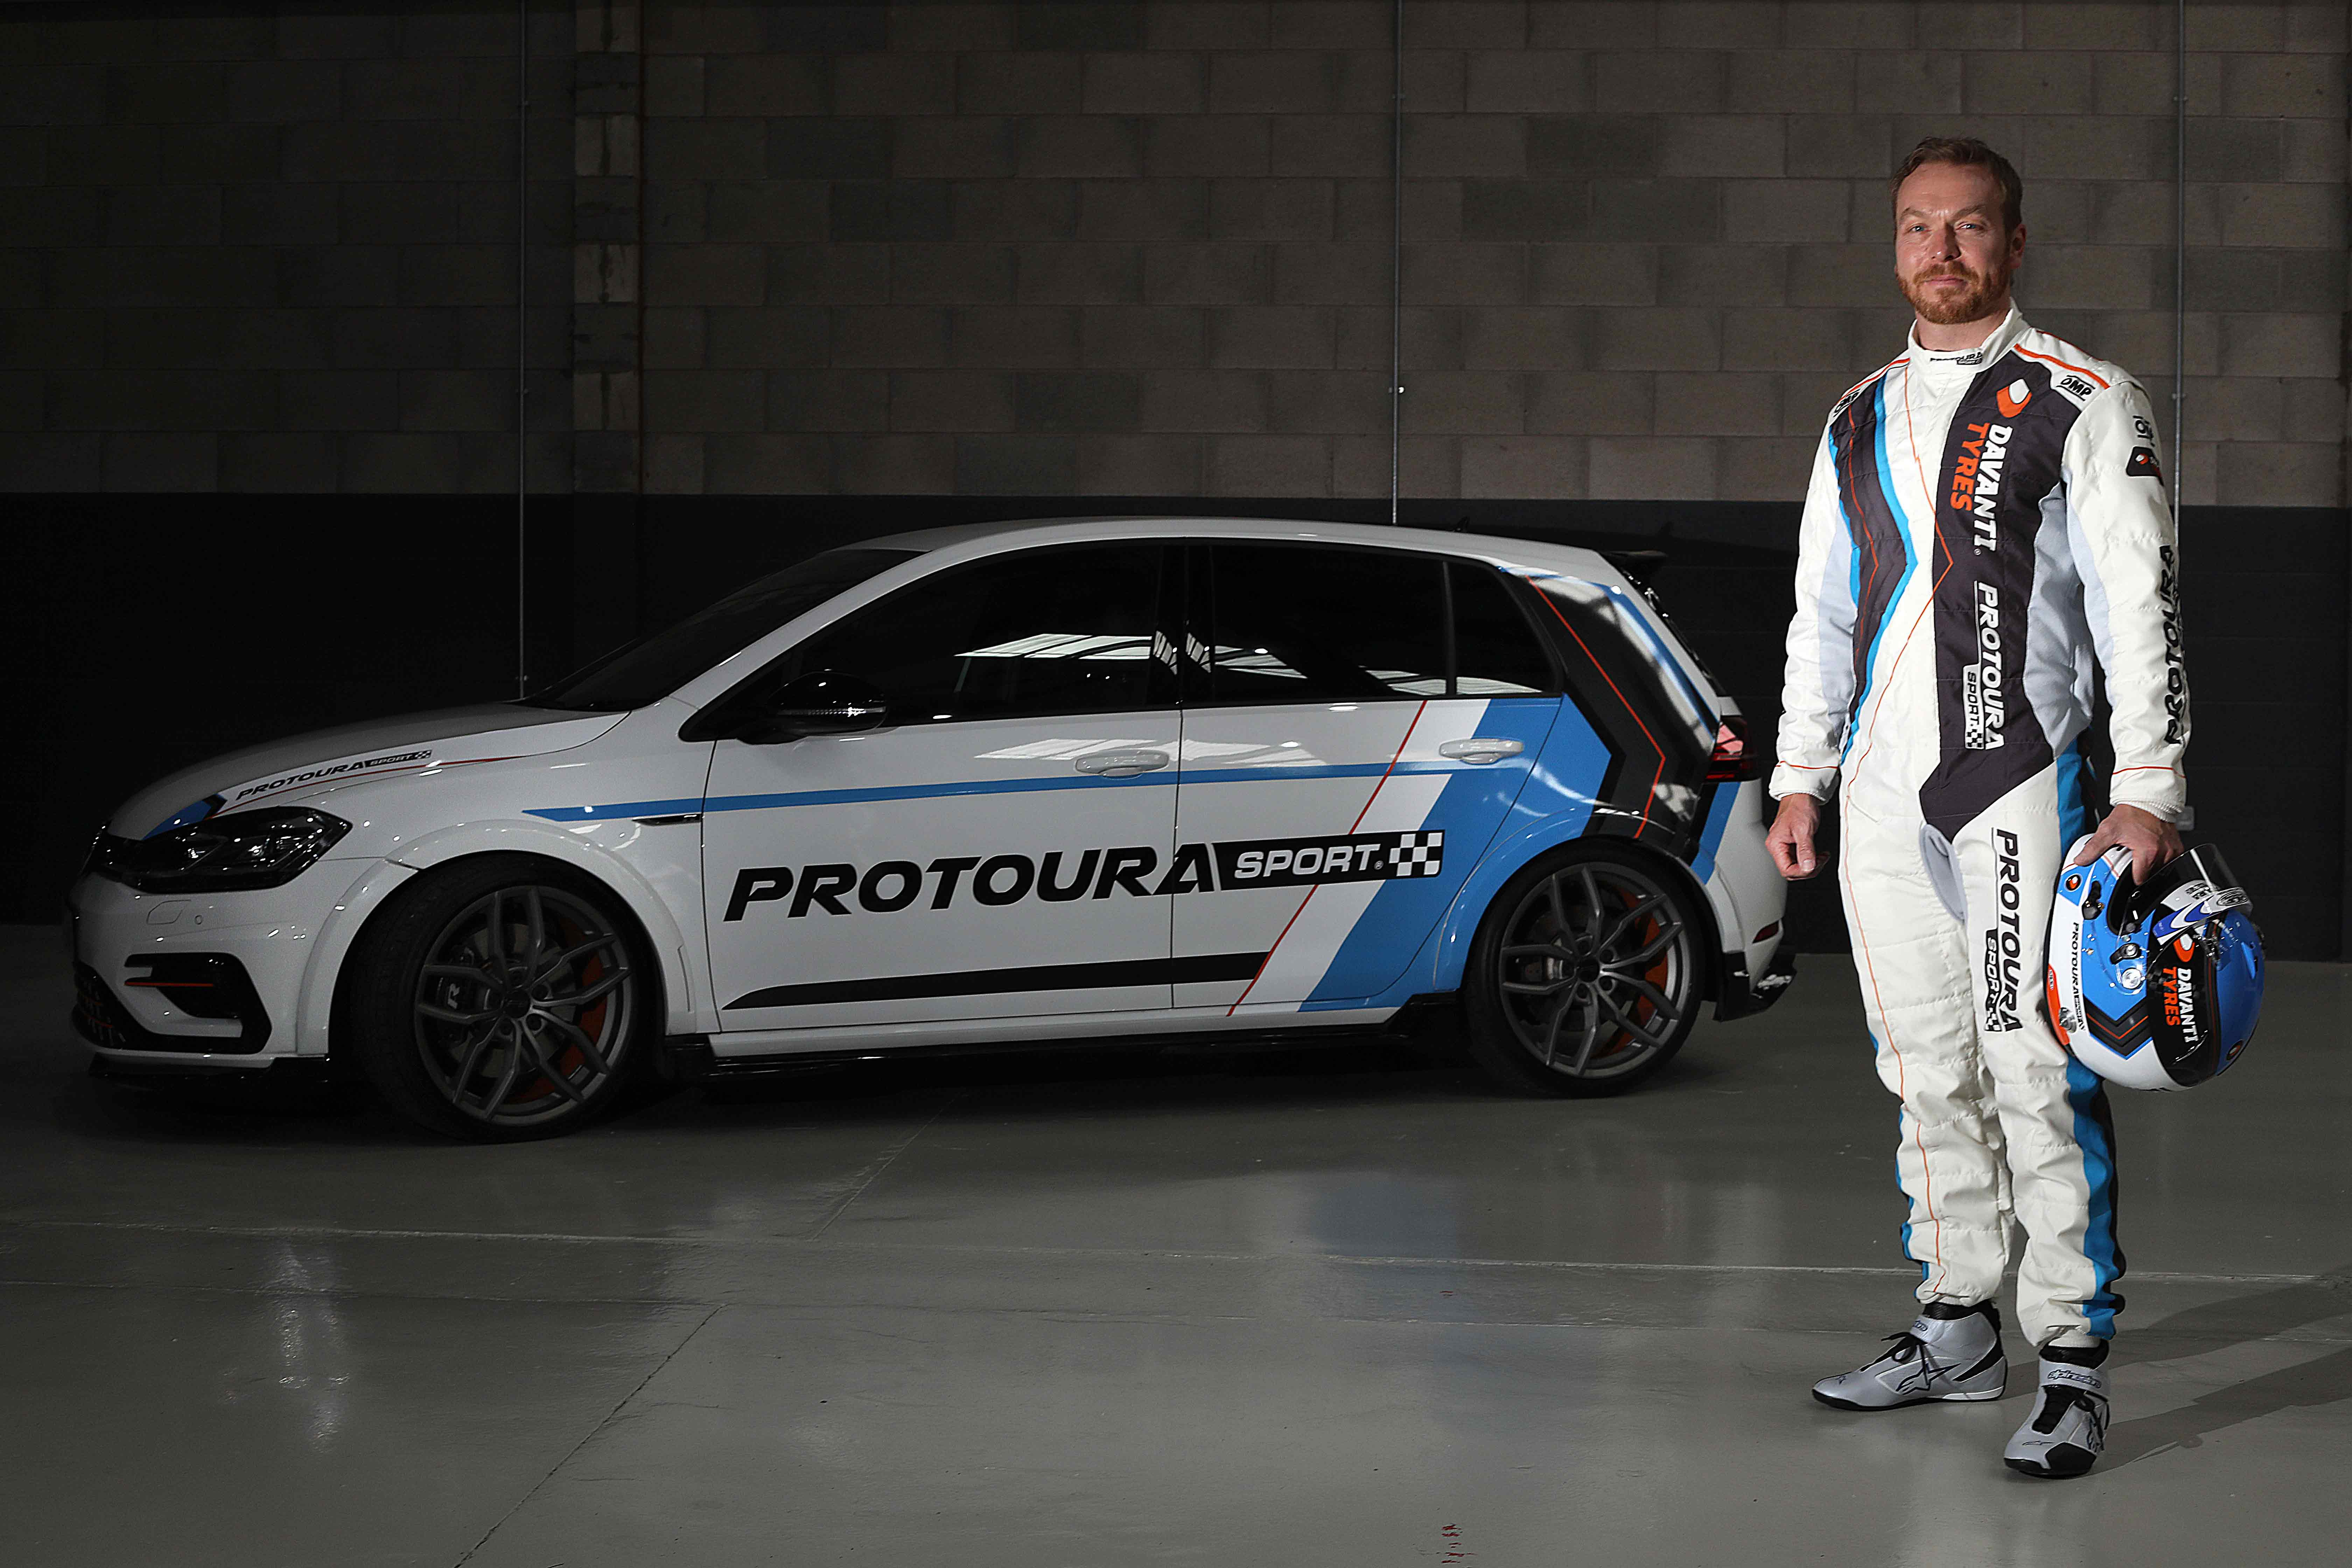 Olympic legend Sir Chris Hoy unveiled as Protoura Sport ambassador